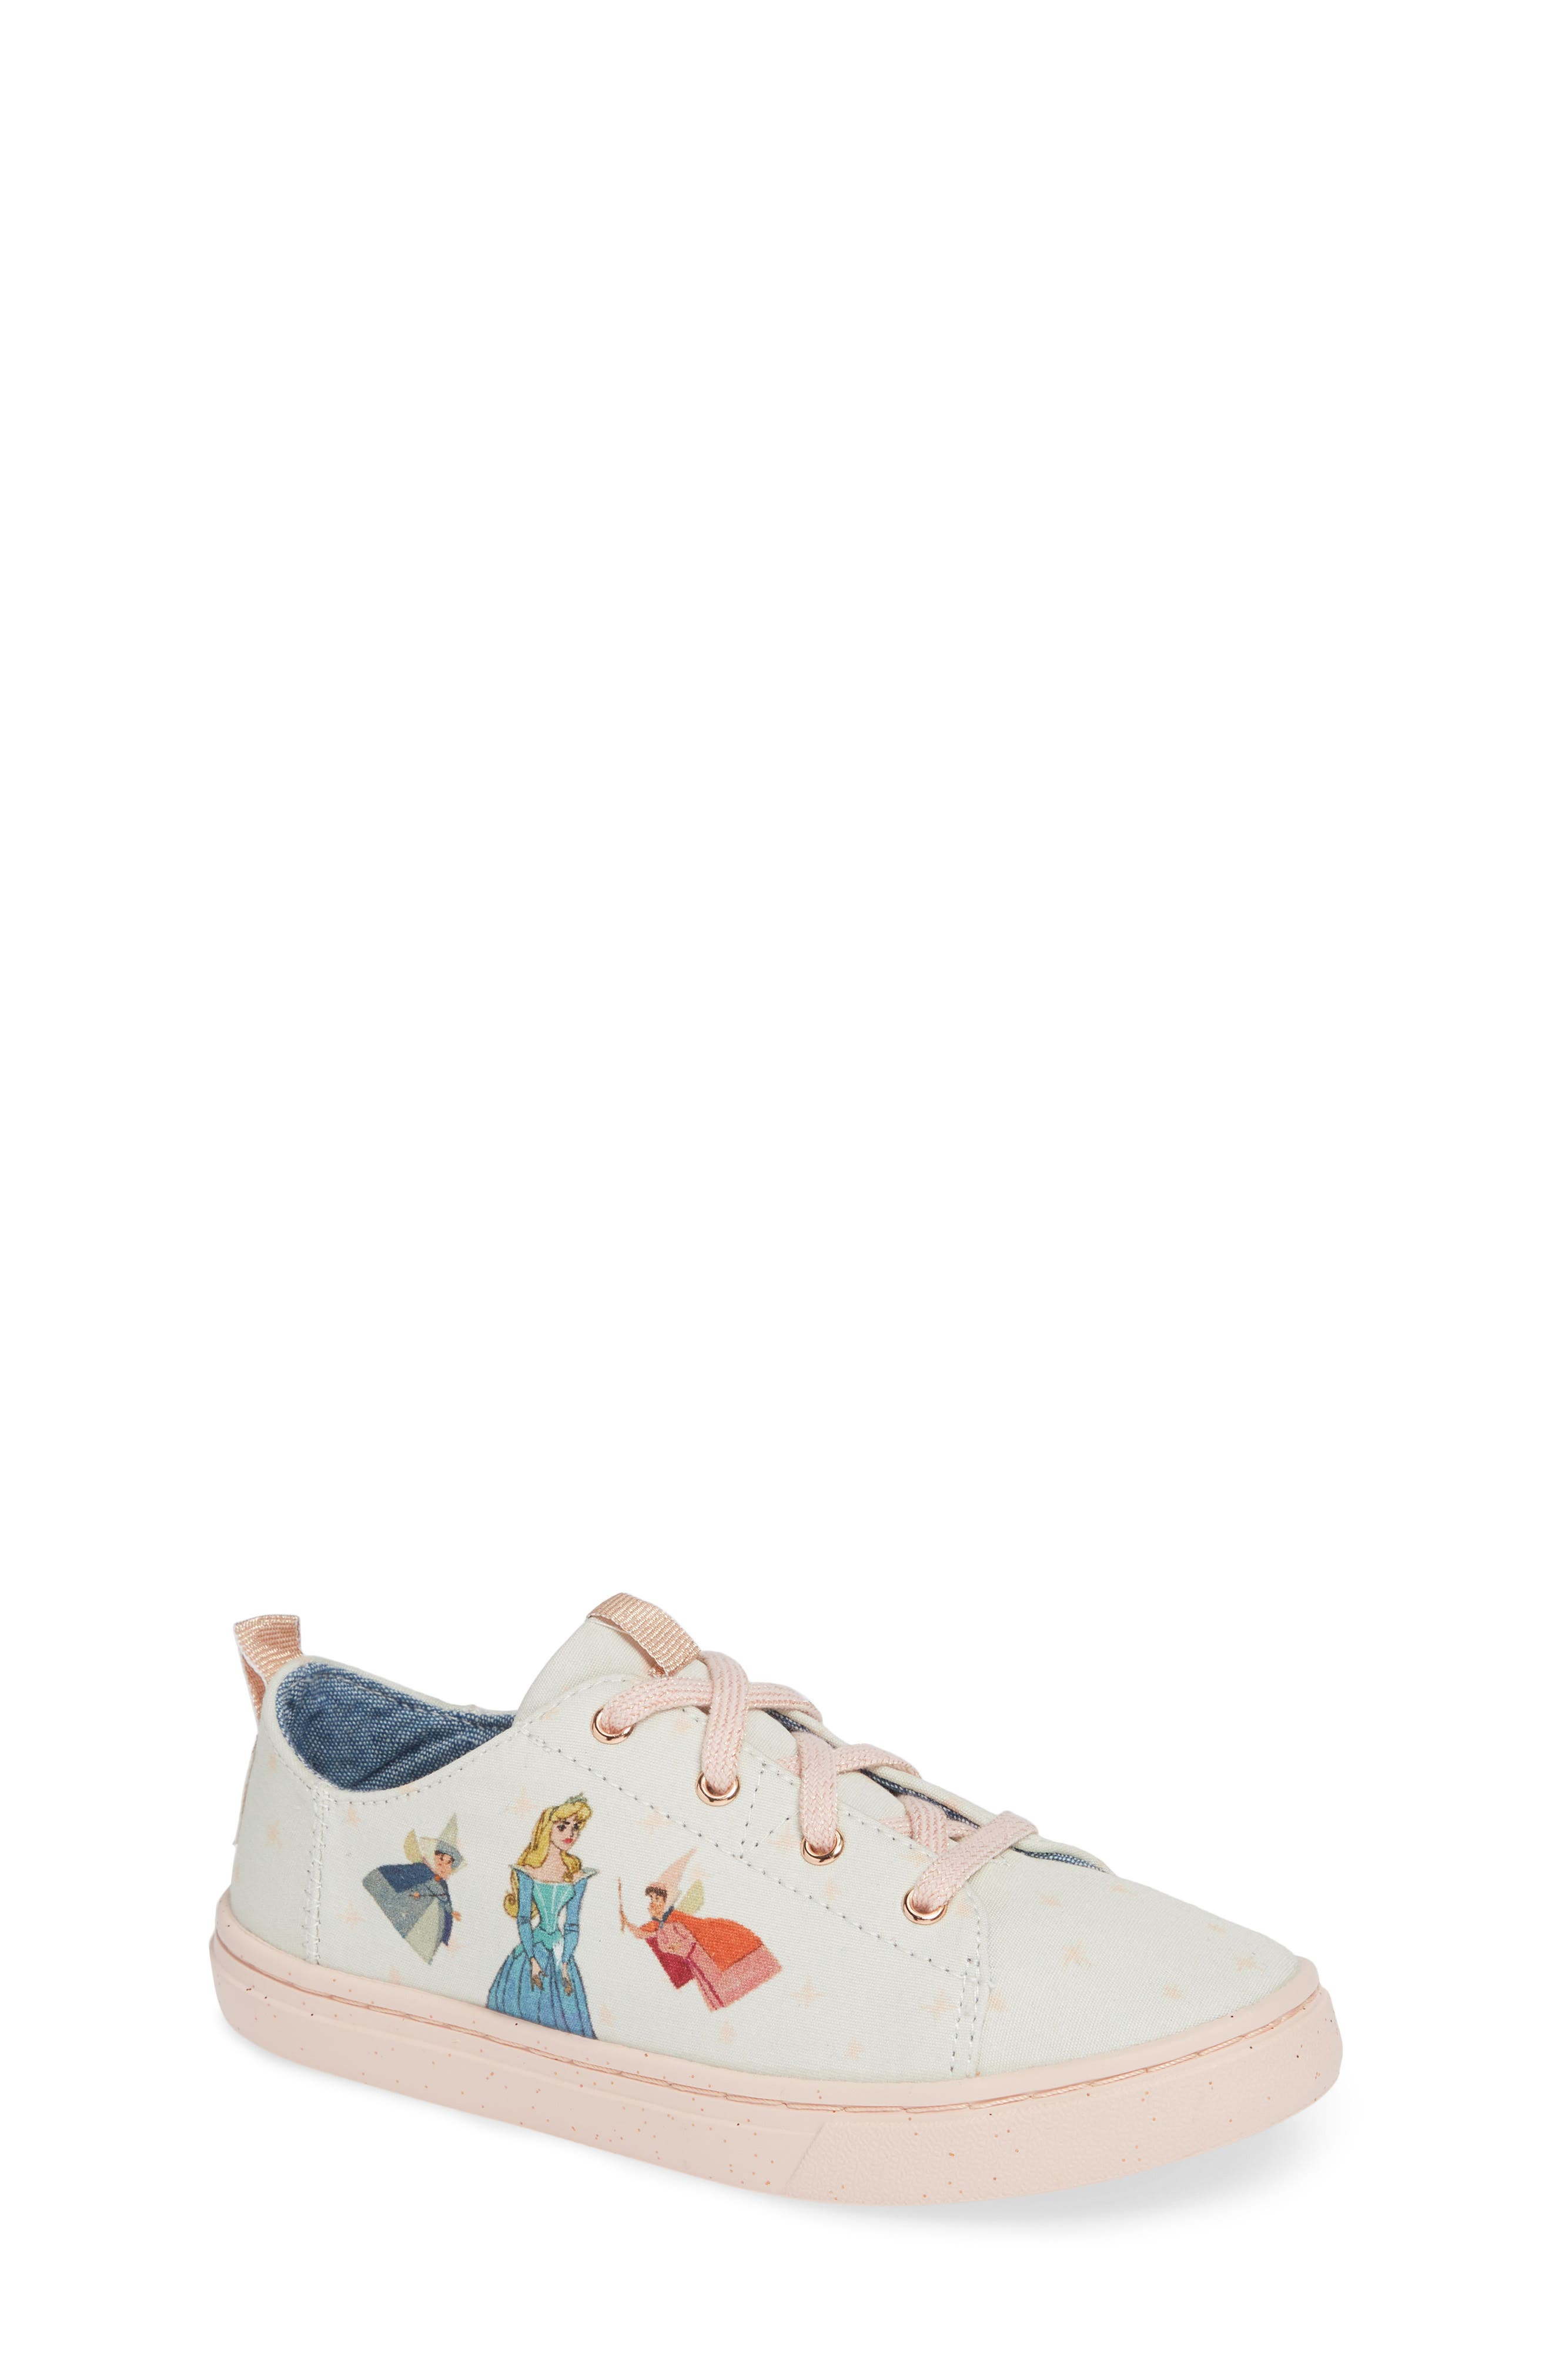 x Disney Lenny Low Top Sneaker,                             Main thumbnail 1, color,                             FAIRY GODMOTHER